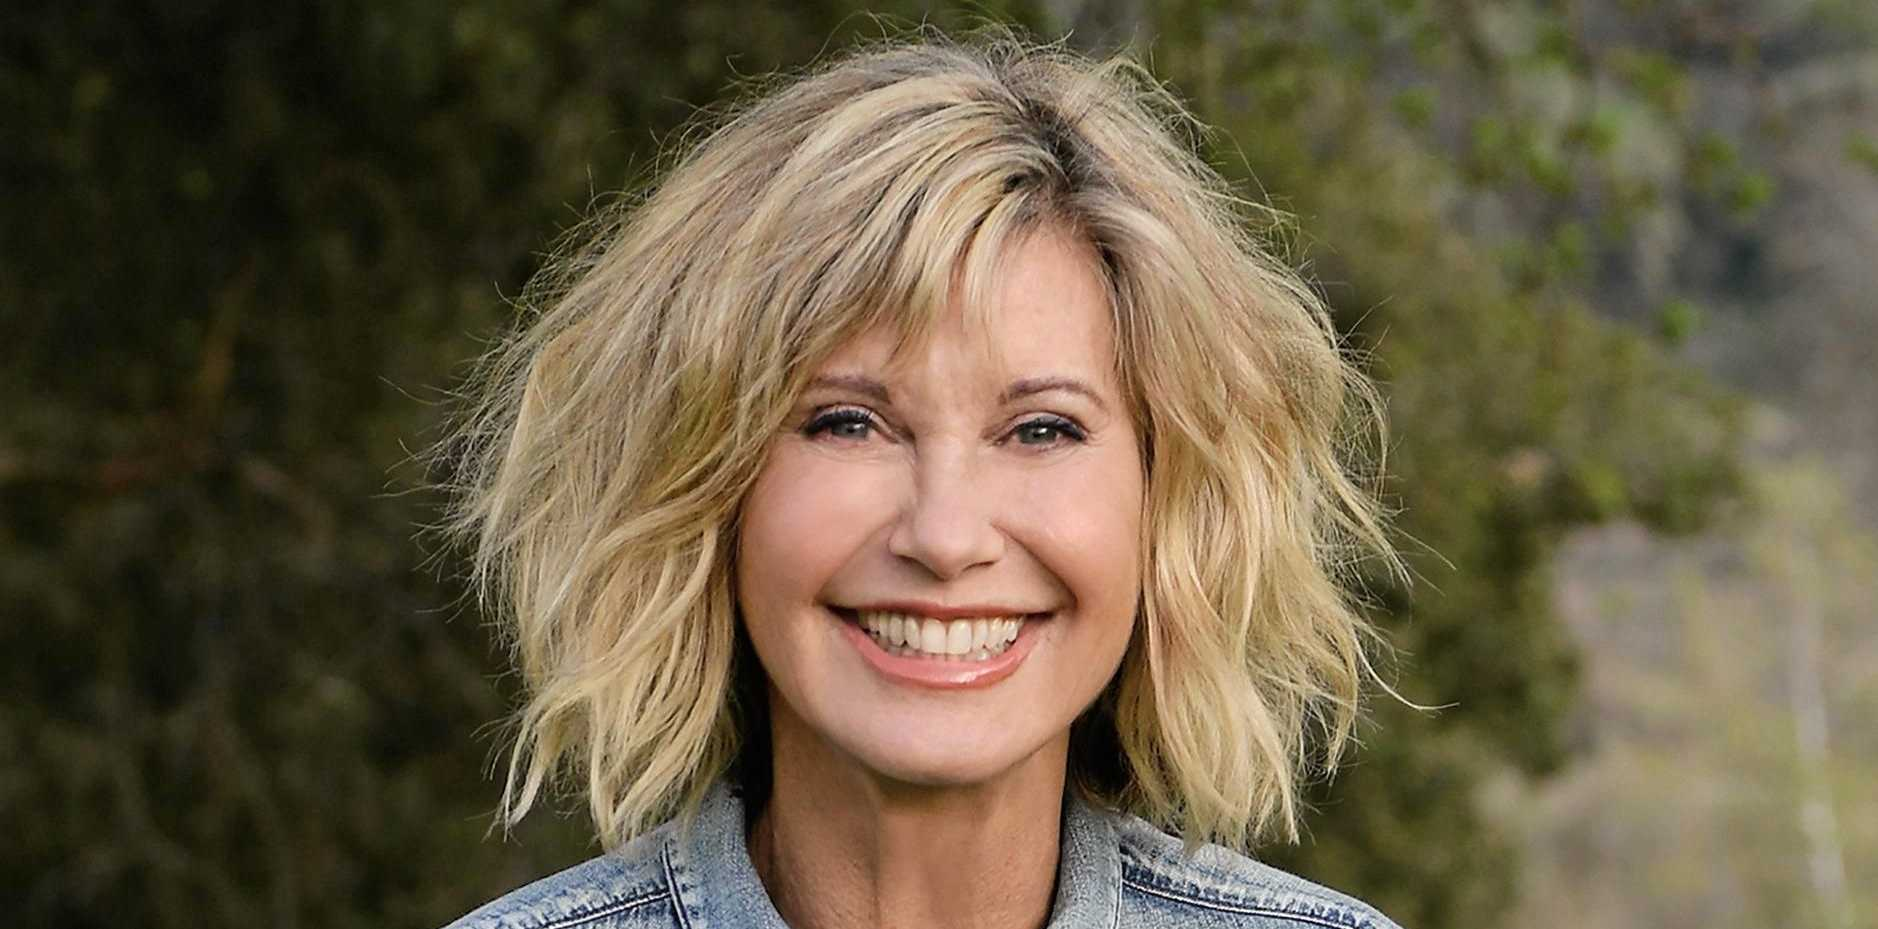 NEW BOOK: Olivia Newton-John's autobiography, Don't Stop Believin'.